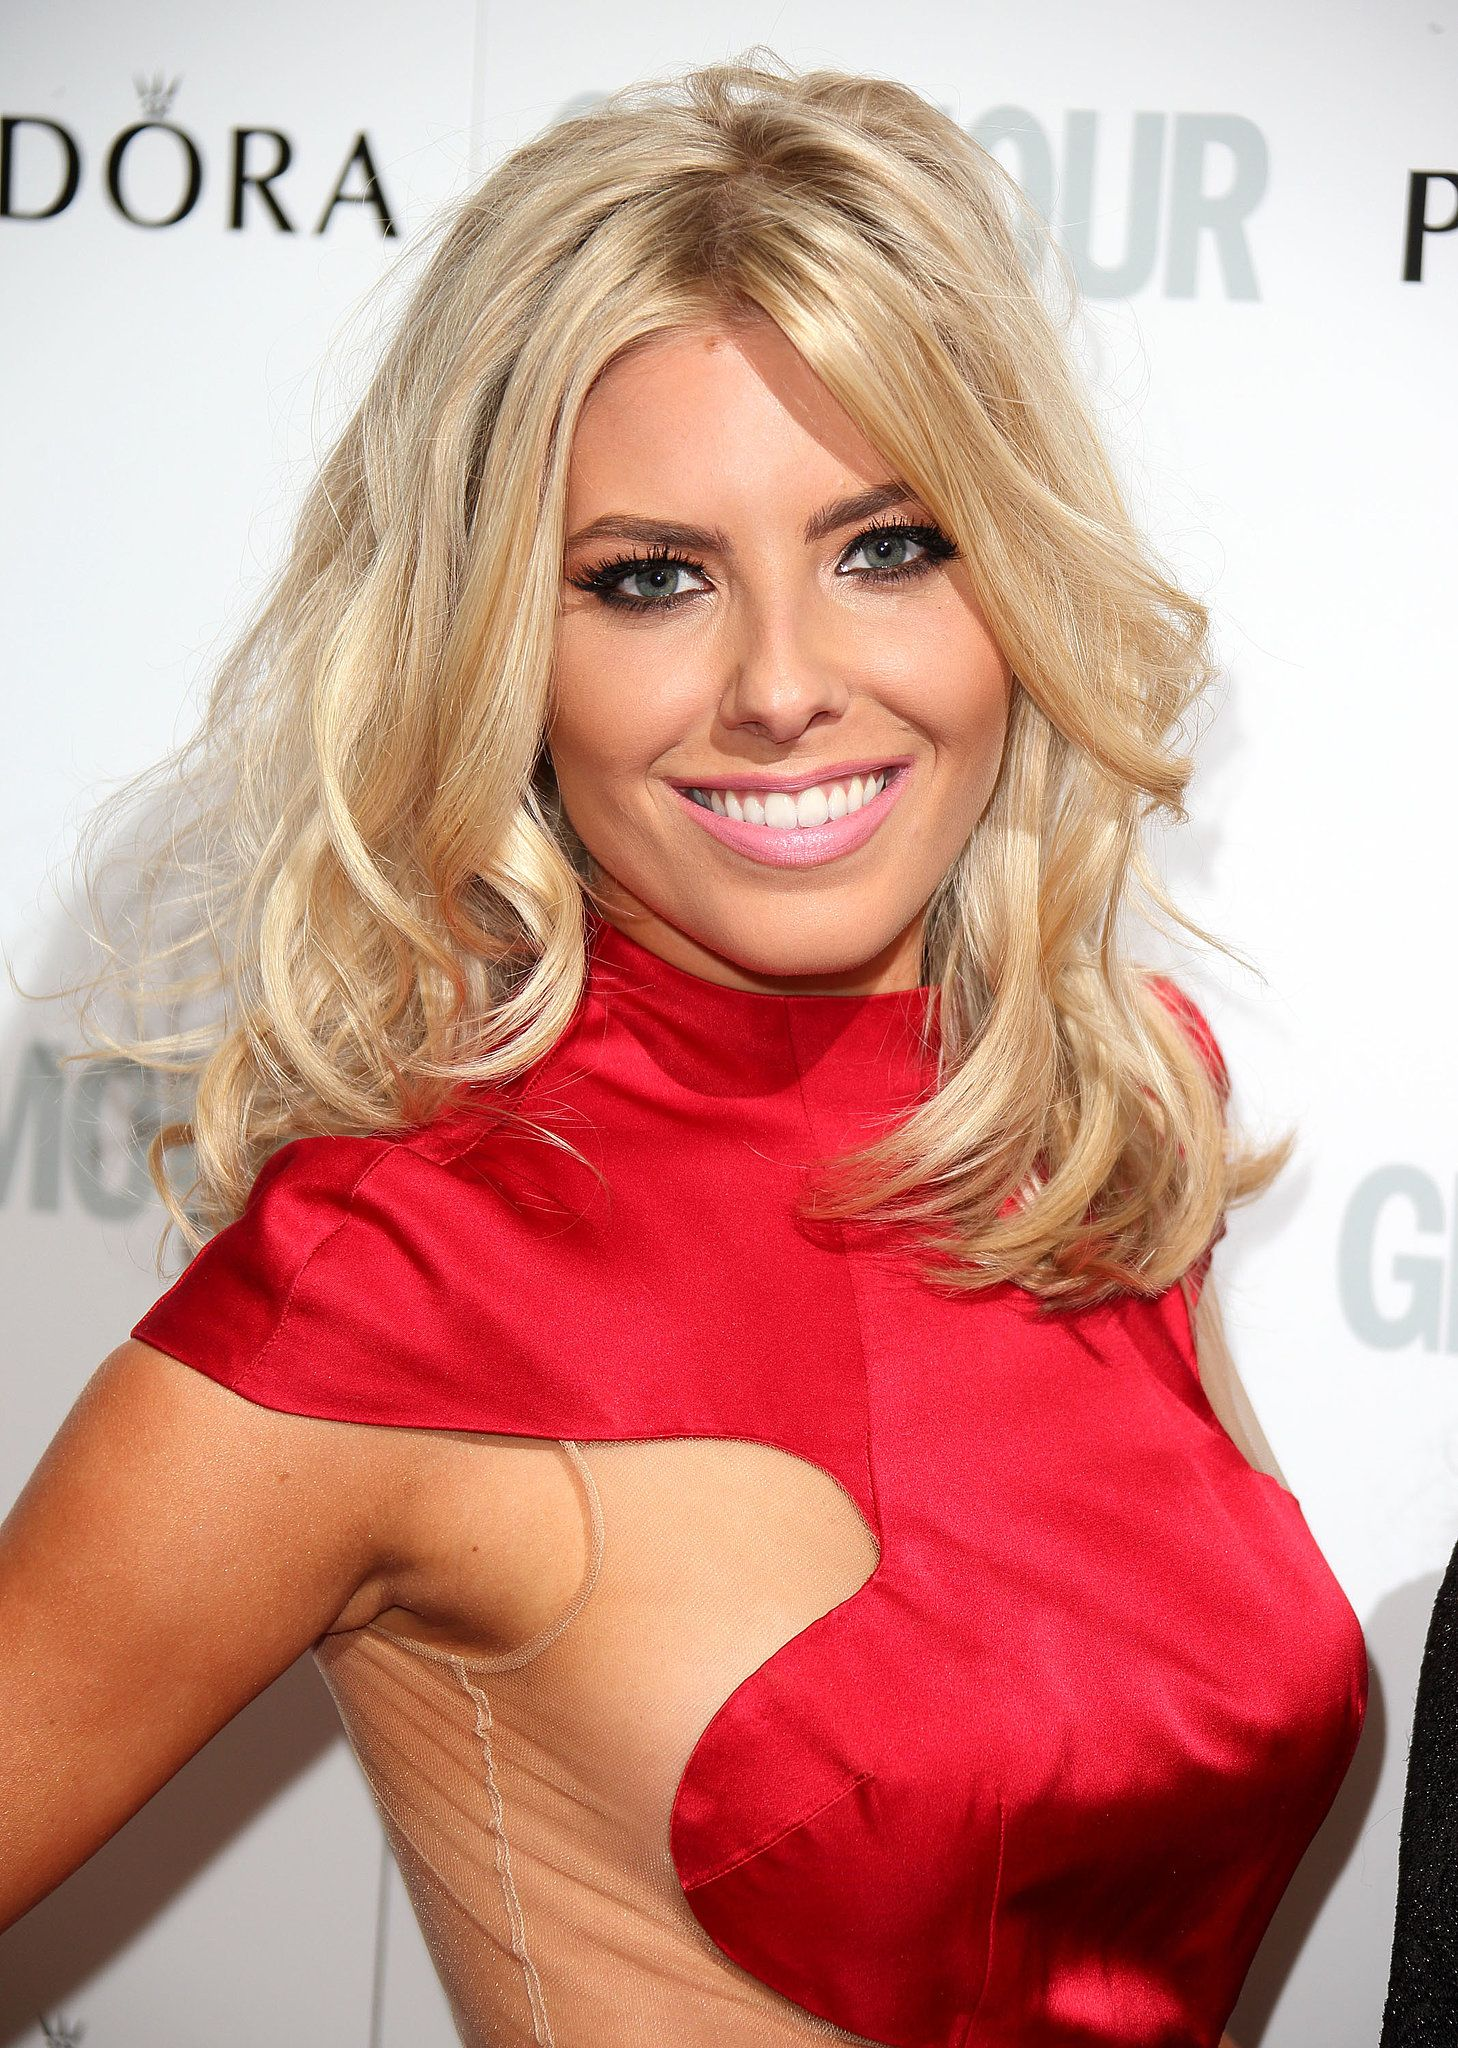 Leaked Mollie King nude photos 2019